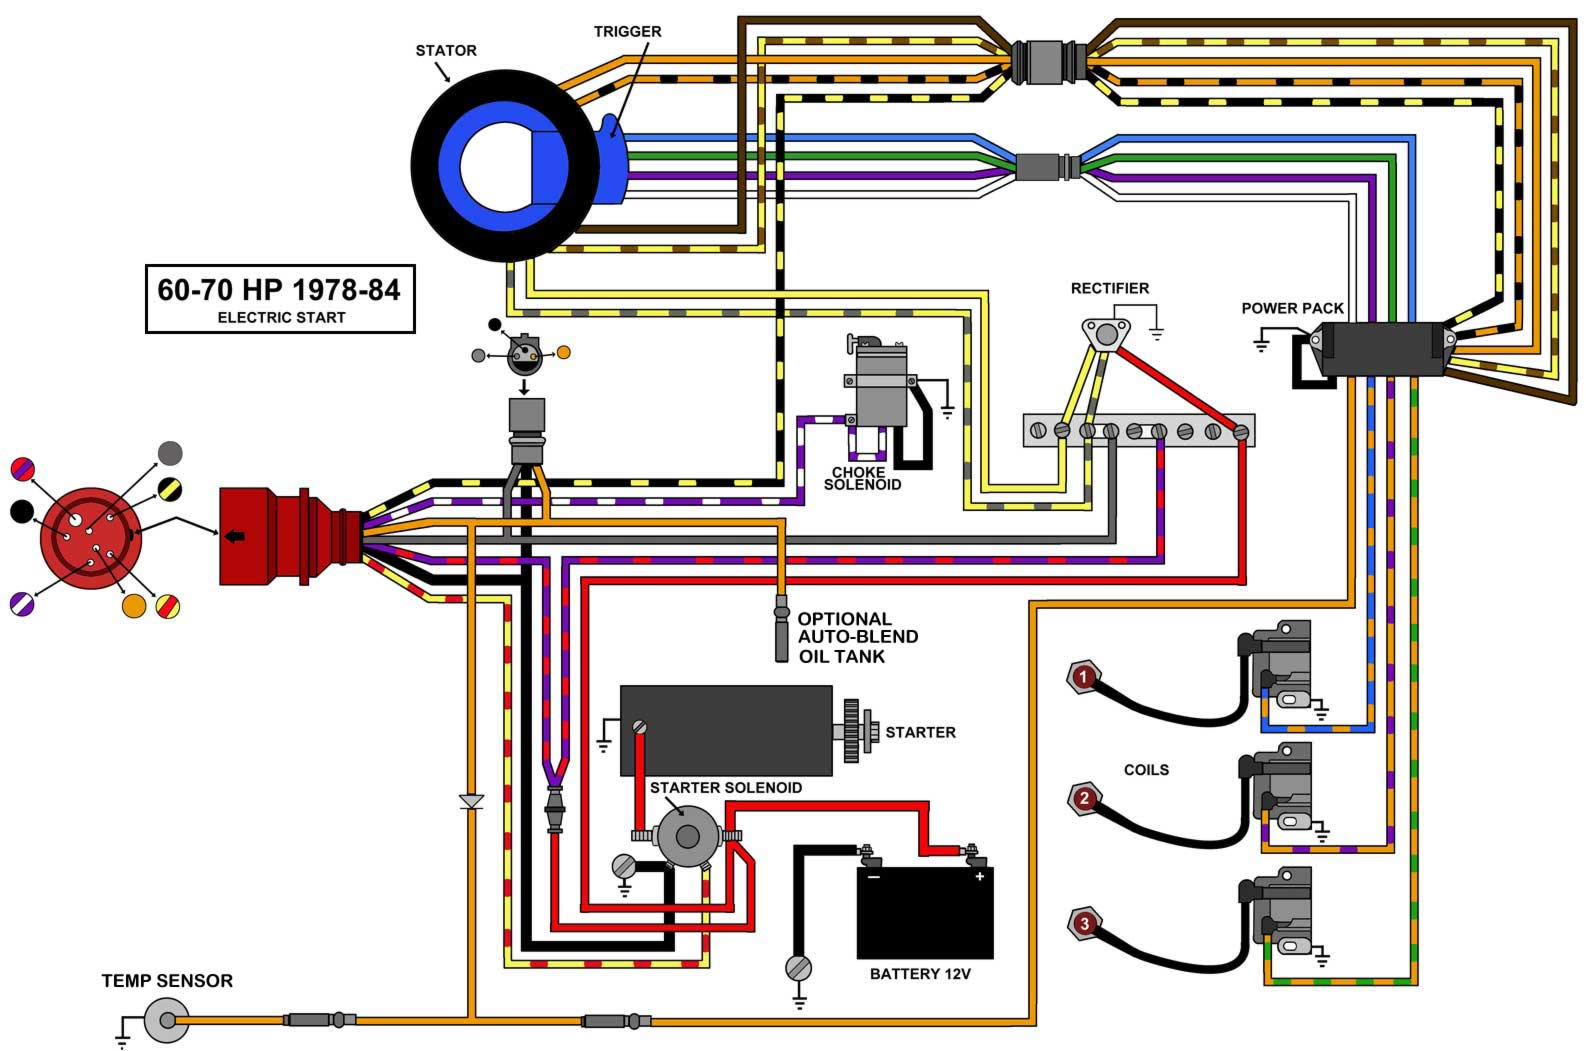 78 84_3 CYL_EL yamaha outboard motor wiring diagrams the wiring diagram Johnson Ignition Switch Wiring Diagram at gsmportal.co